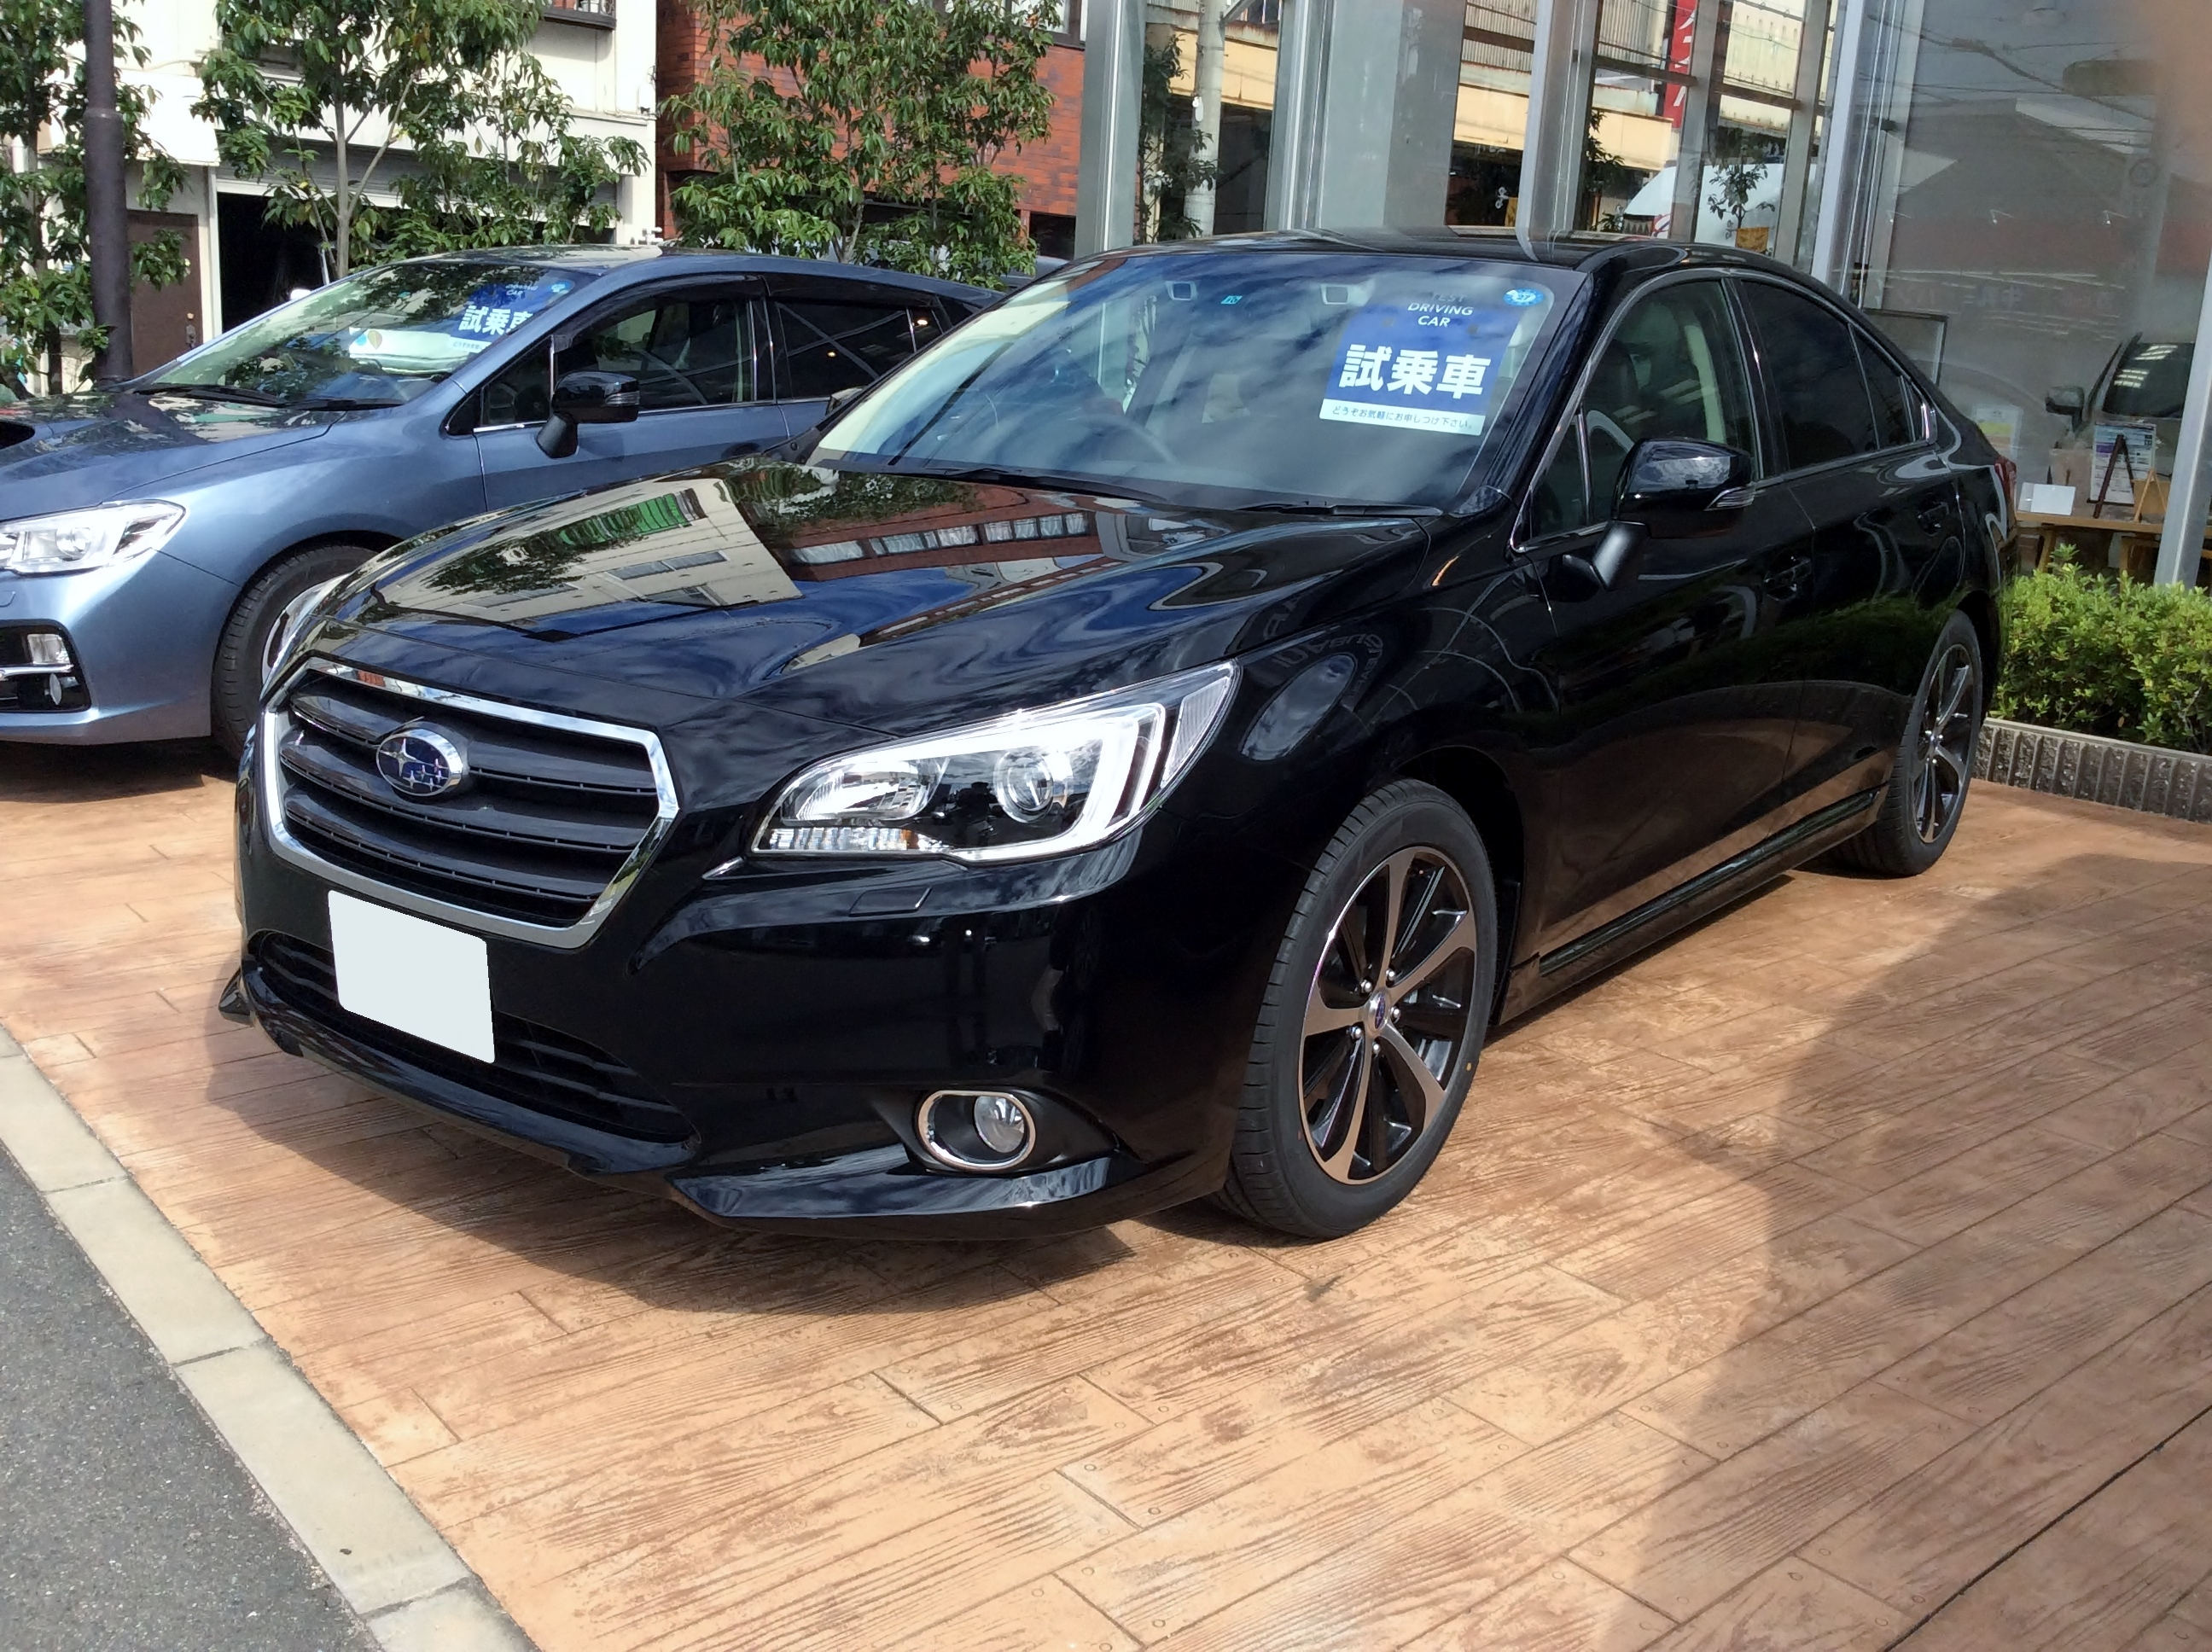 Pictures of subaru legacy outback iv 2012 #3